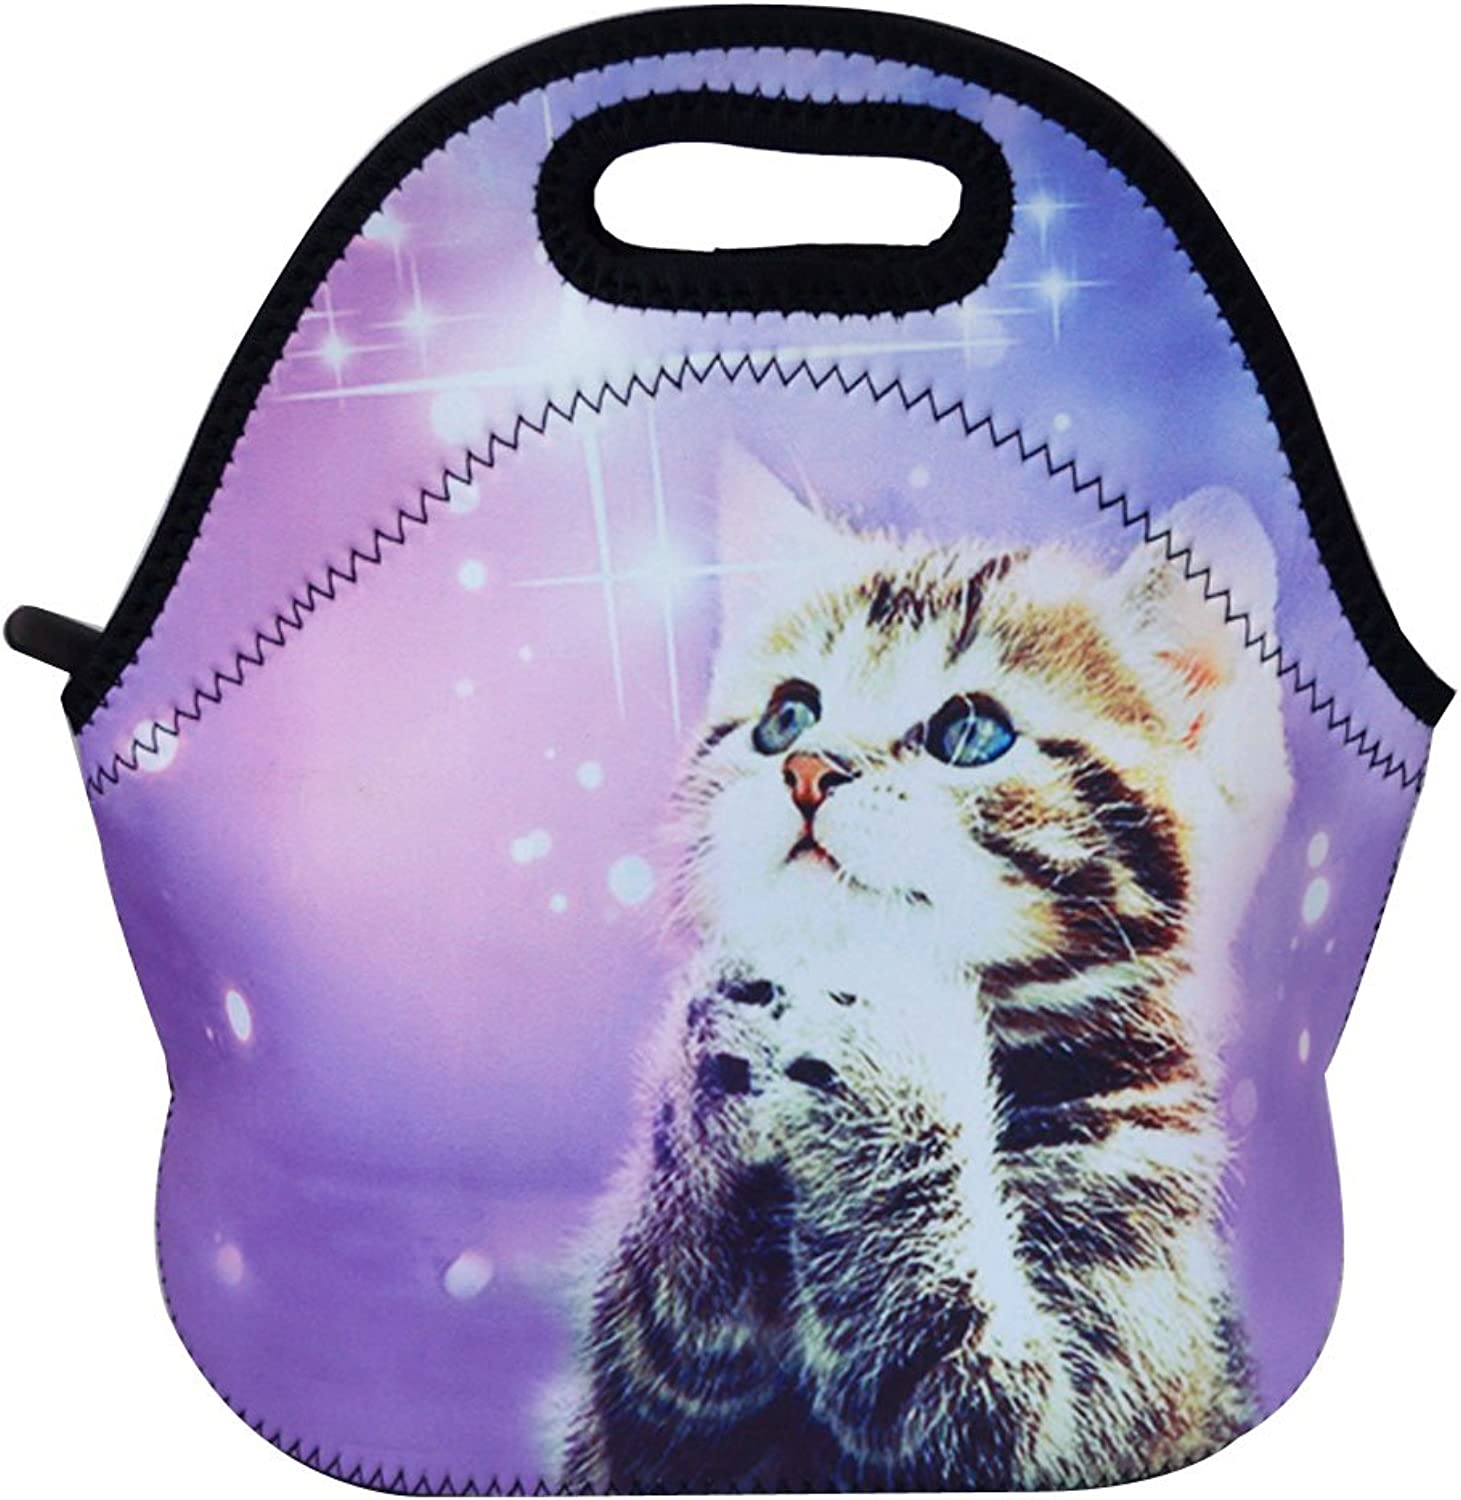 Monique Animal Print Neoprene Waterproof Lunch Bag Tote Large Capacity Insulated Picnic Handbag Purse for School Office Travel Cat